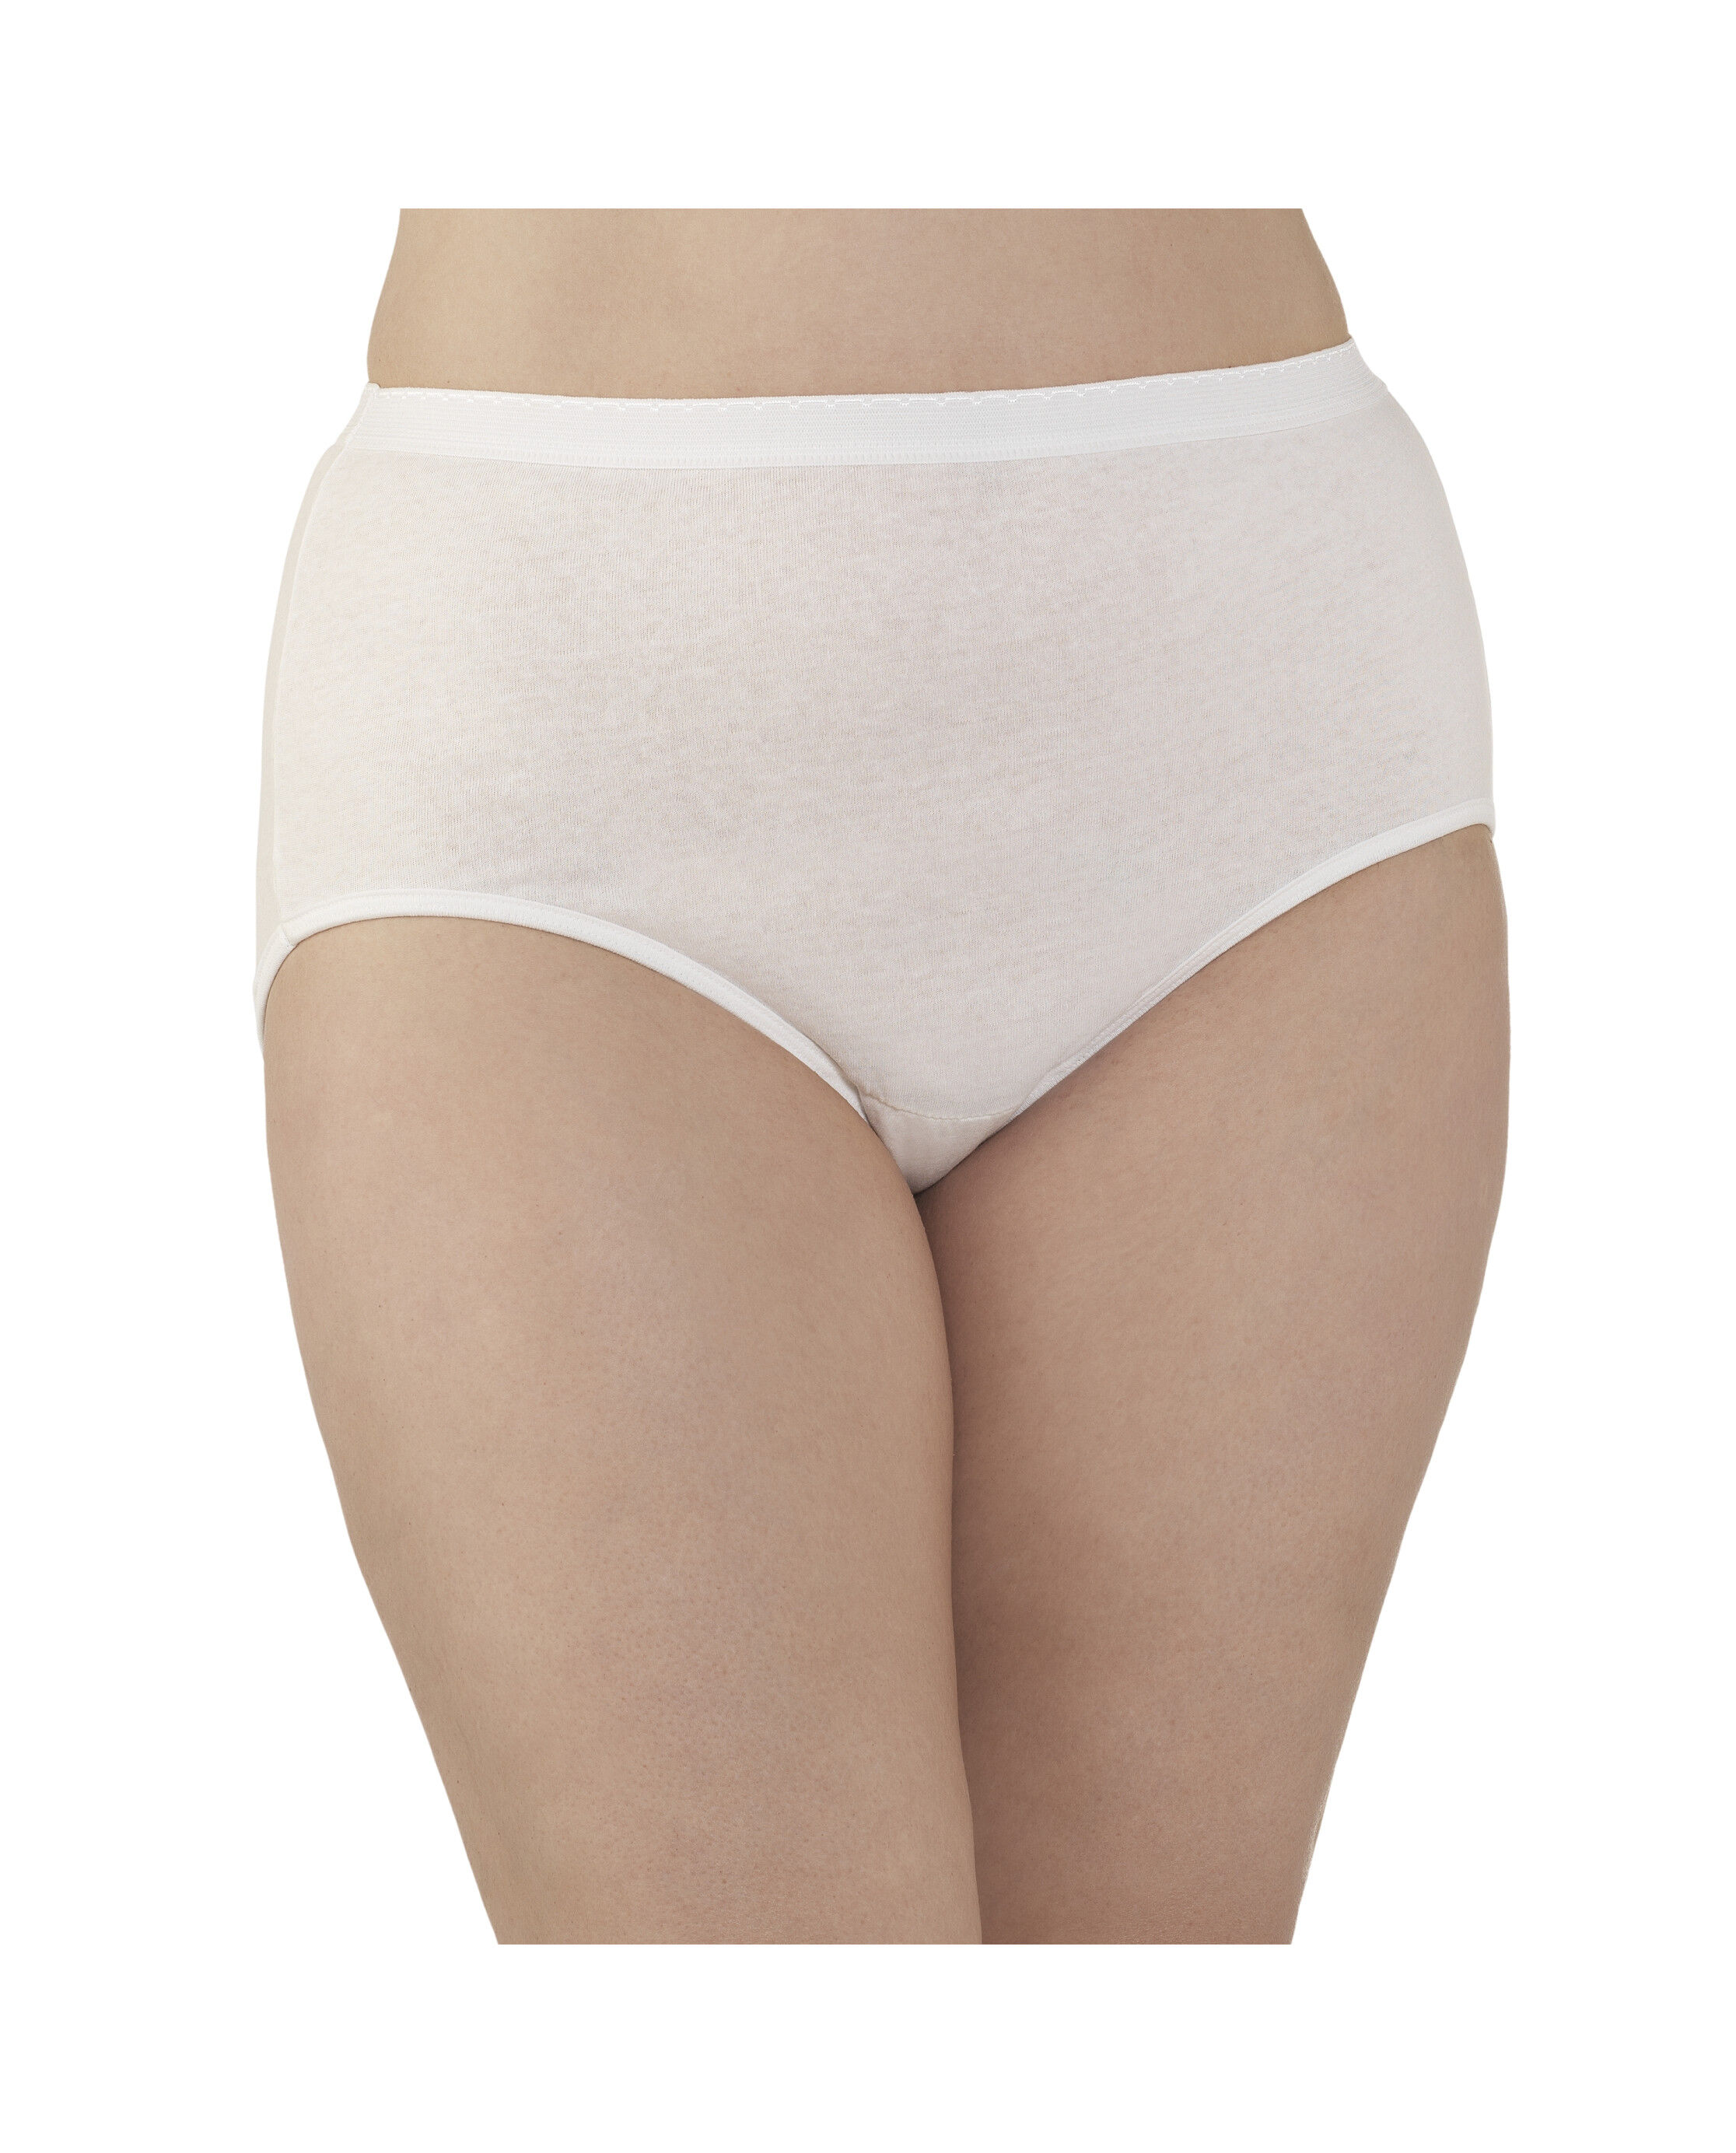 FRUIT OF THE LOOM ~ 12 NEW Womens Cotton Briefs Underwear Panties White 2XL 9